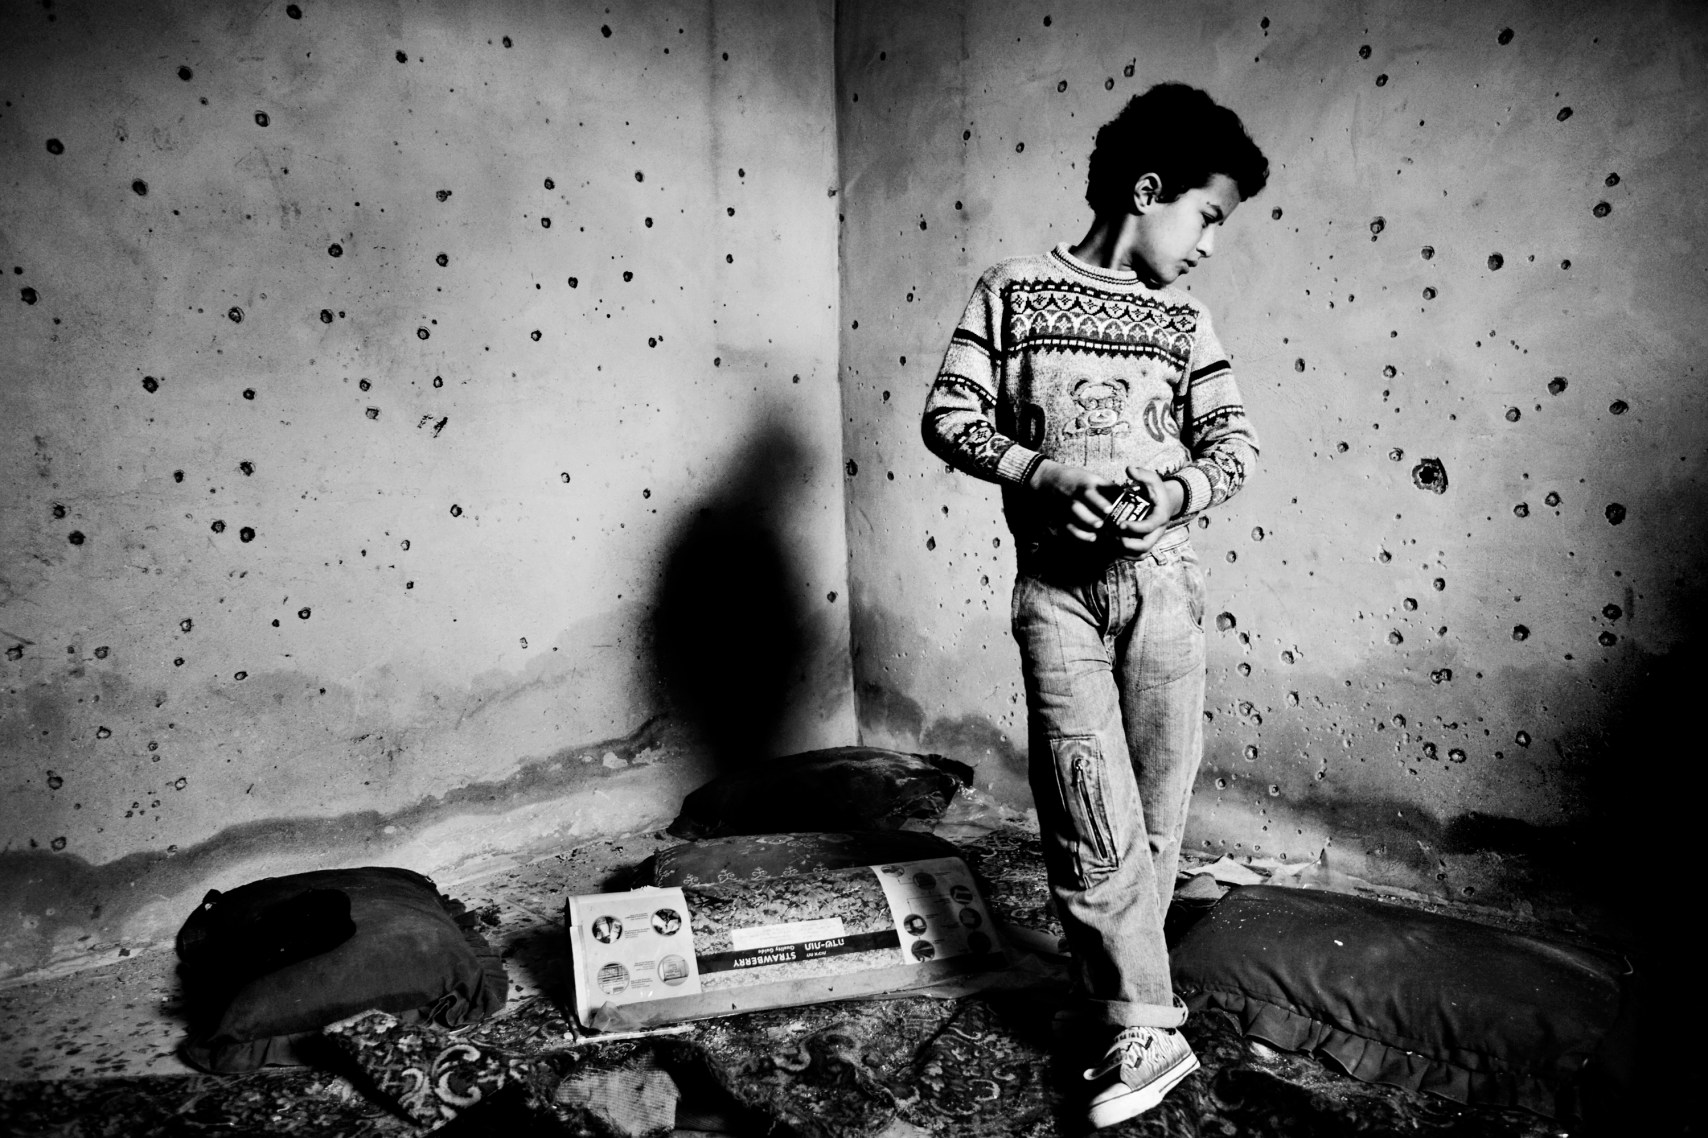 A boy is looking for his toys in what is left of the family house, where the walls are full of gunshots. The Israeli-Hamas war lasted for 22 days, and in the wake of the ceasefire in the Gaza Strip, surviving Palestinians returned to homes crushed beyond repair and mourning of lost relatives. 13 Israelis and more than 1300 Palestinians were killed. An estimated 4000 buildings were destroyed. 50.000 Gazans were left homeless, and the areas where Israeli tanks and artillery poured in at the start of the ground war are devastated: Beit Lahiya, El Atatra and large sections of Jabaliya, as well as the outer Gaza City neighbourhoods of Zeitoun and Toufah.